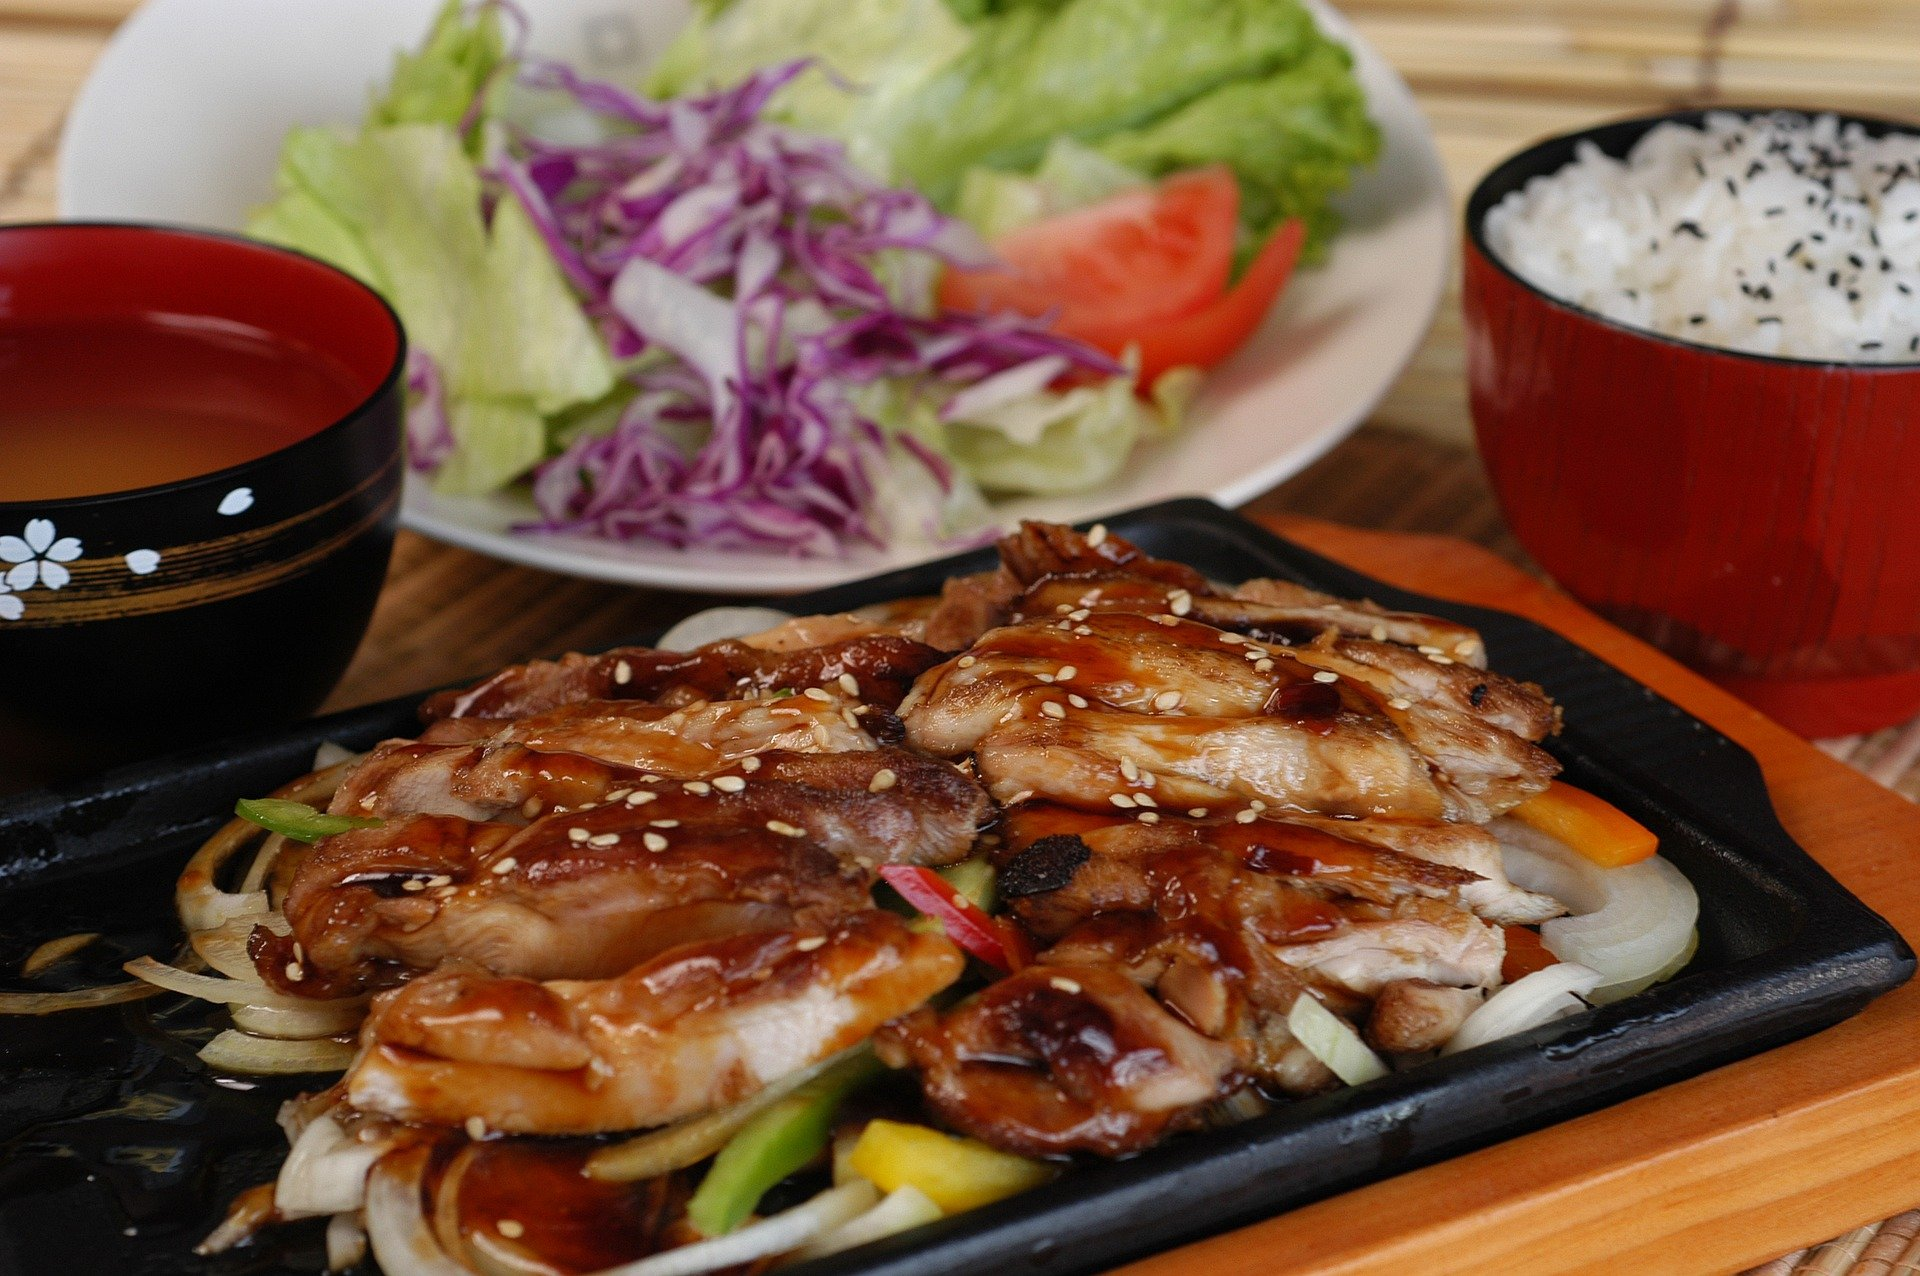 Teriyaki Chicken with Veggies